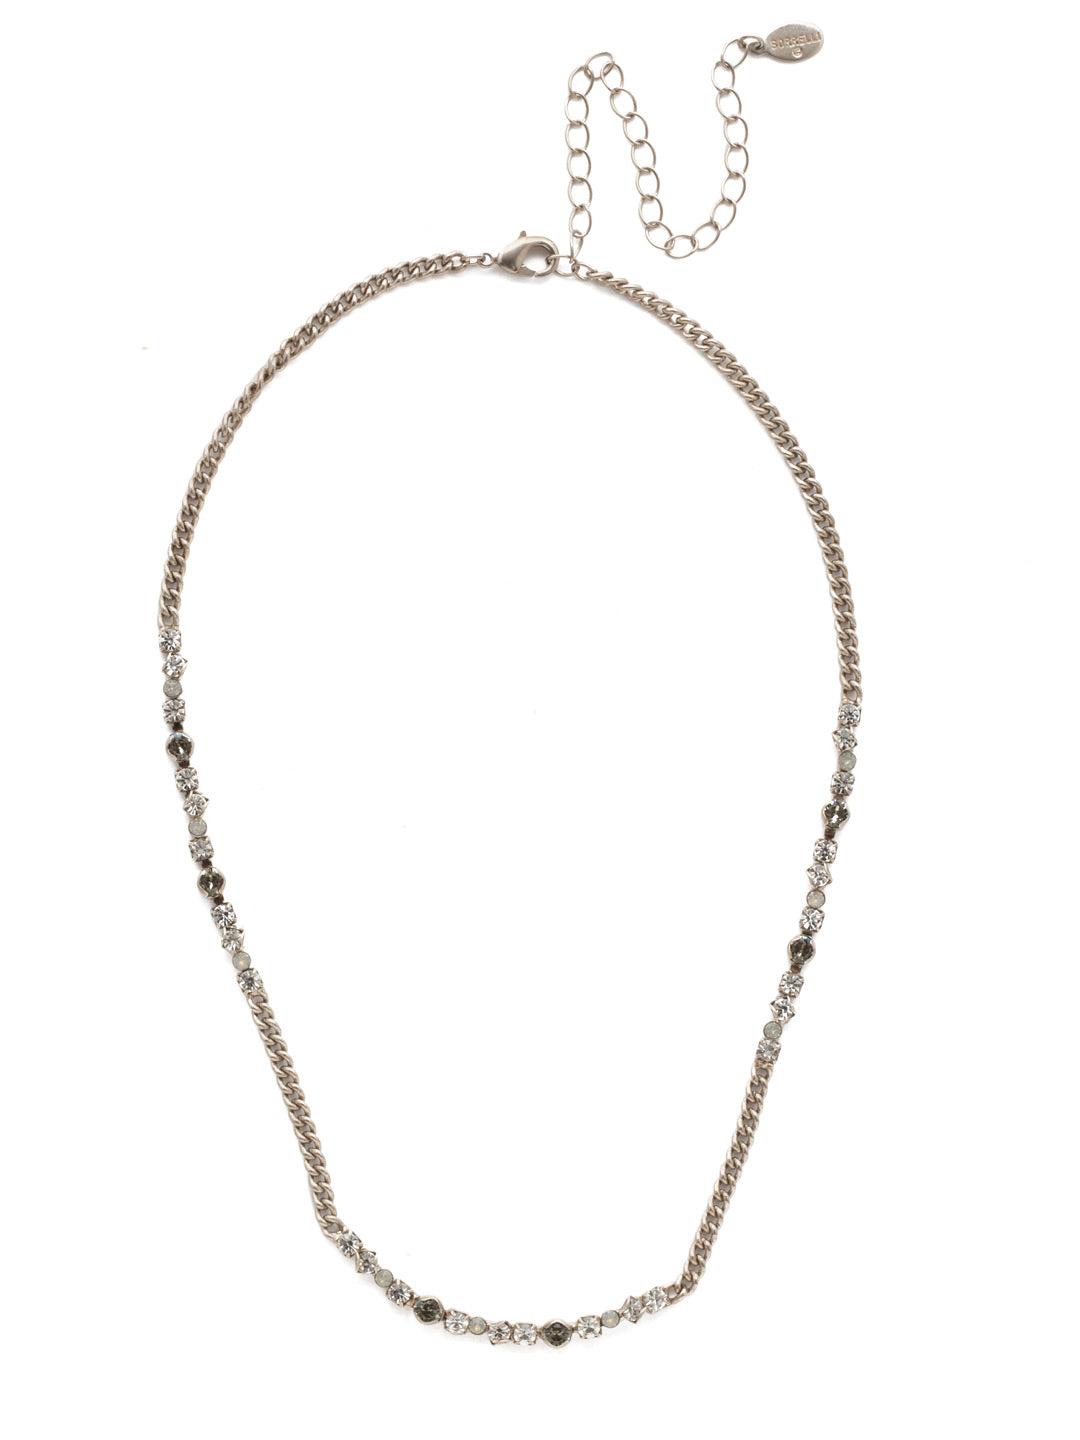 Brielle Tennis Necklace - NEN20ASSTC